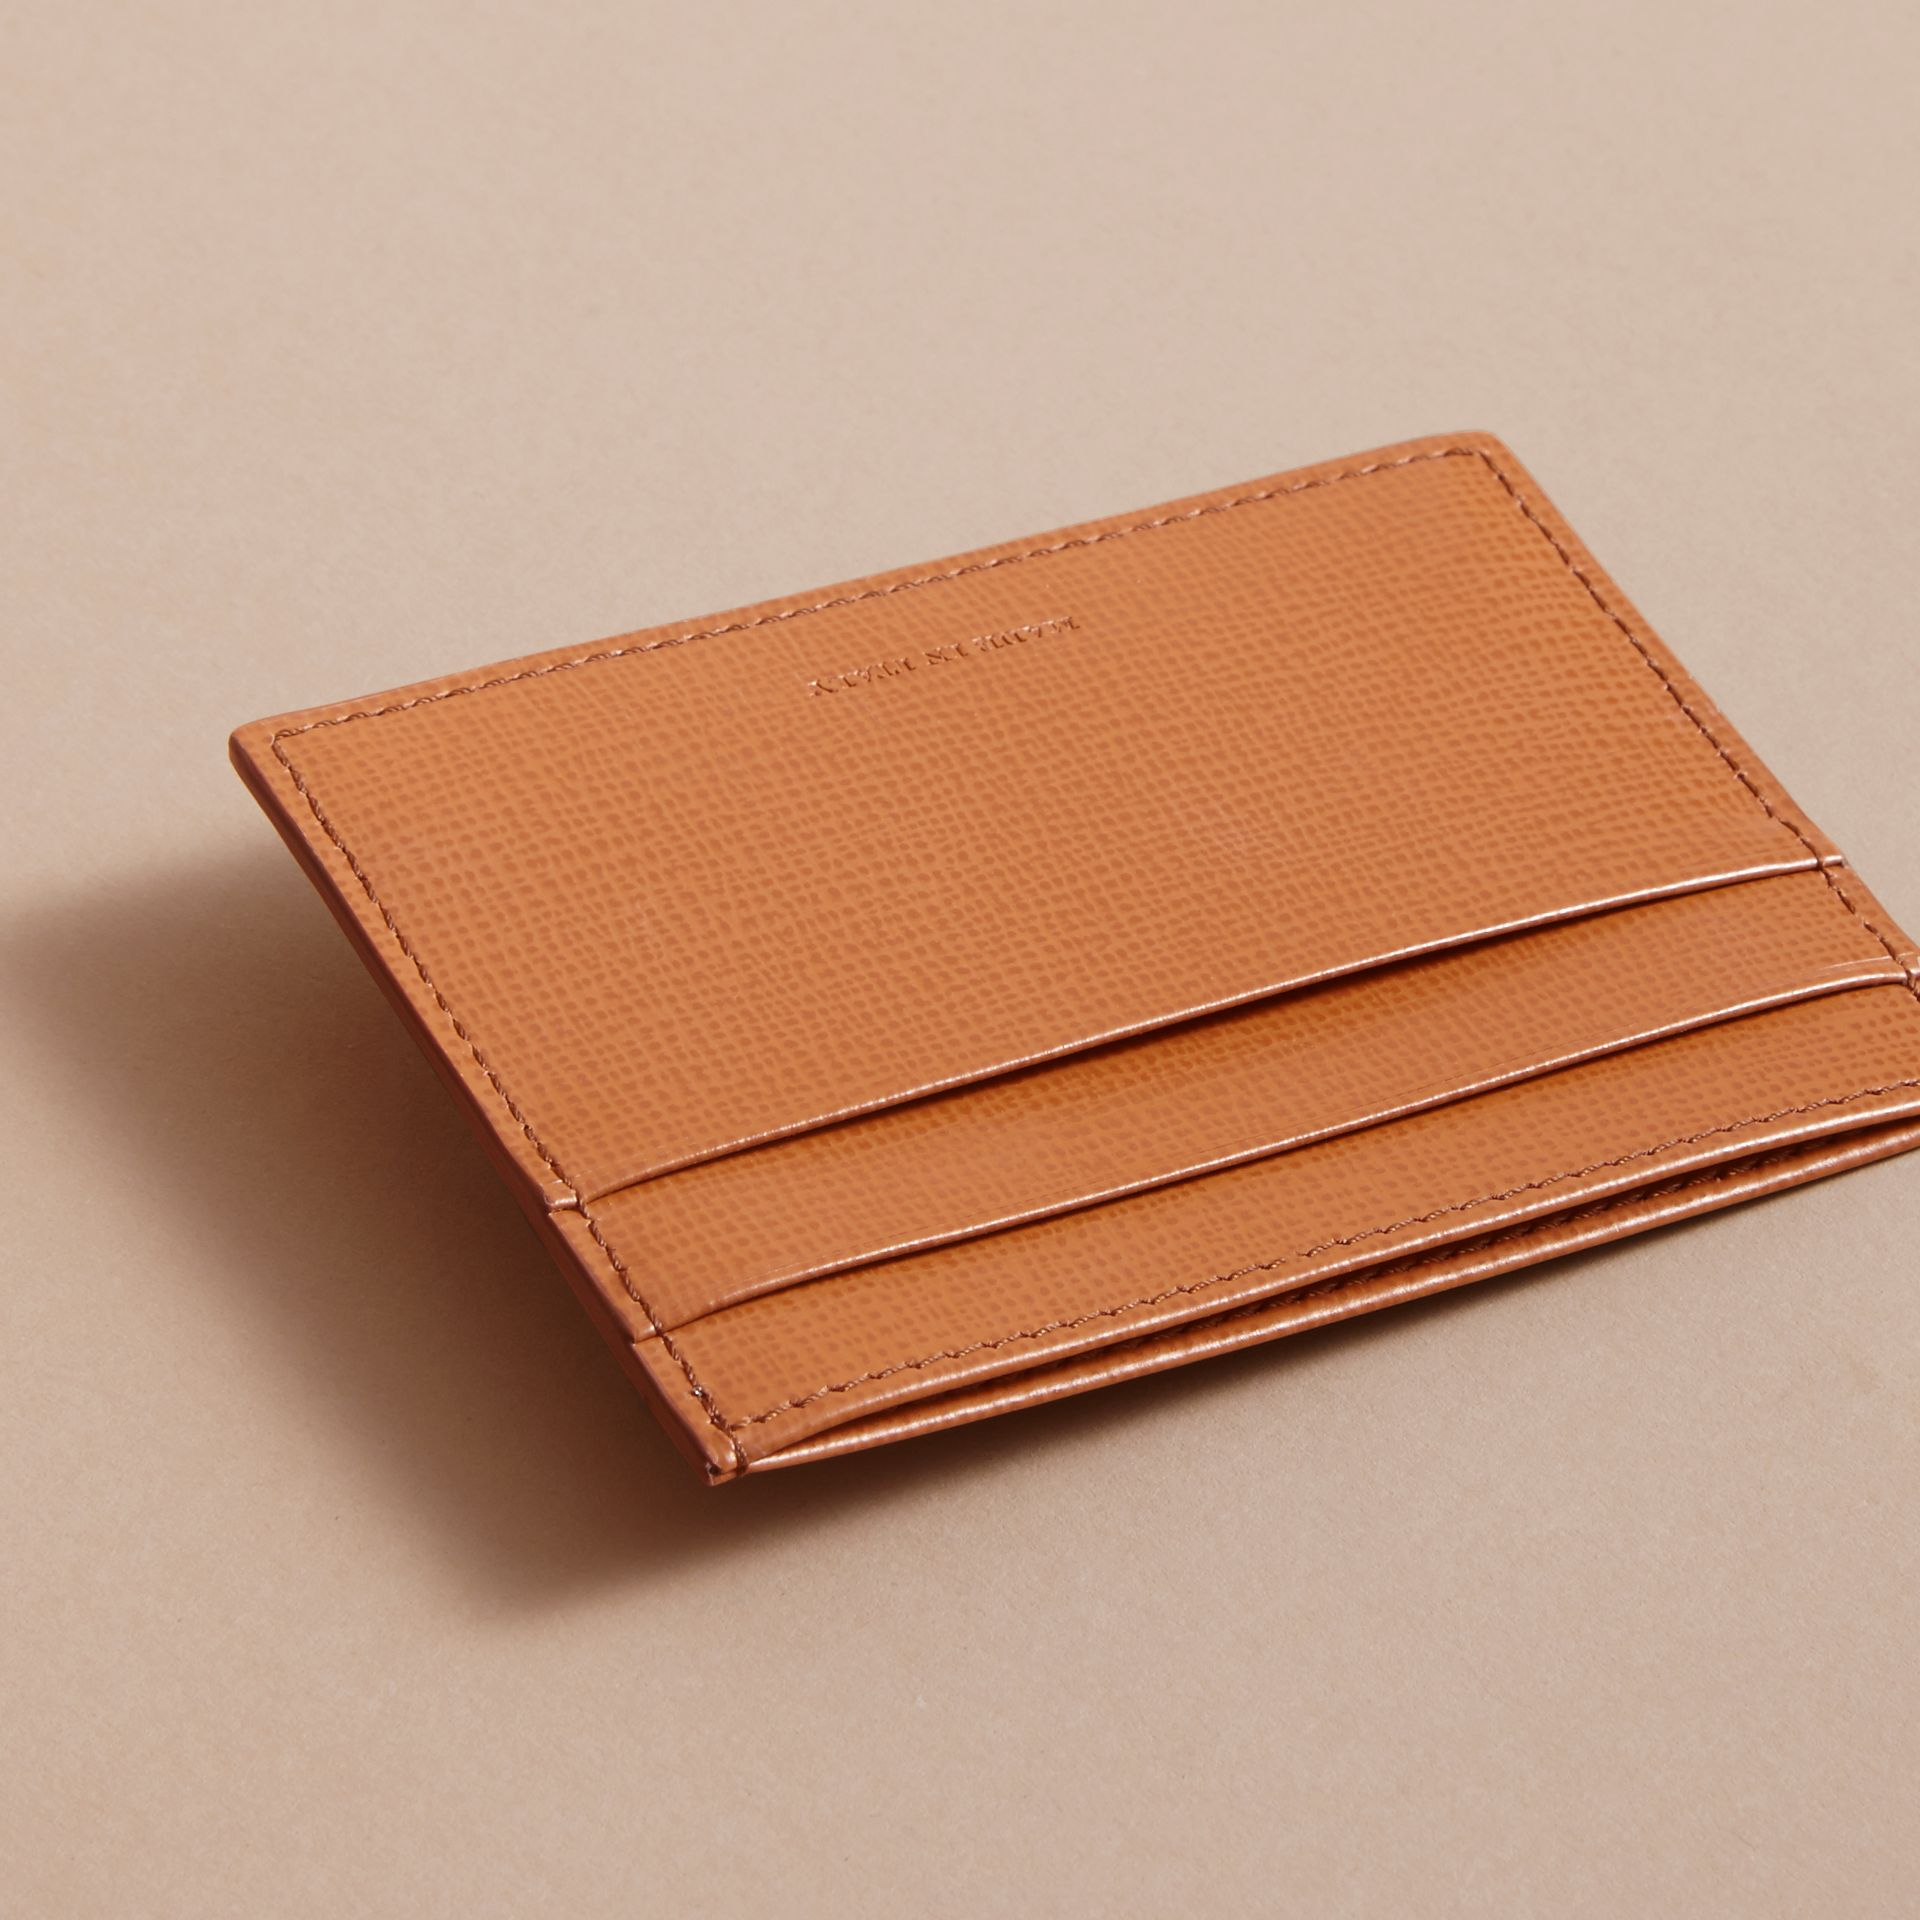 London Leather Card Case in Tan | Burberry - gallery image 3